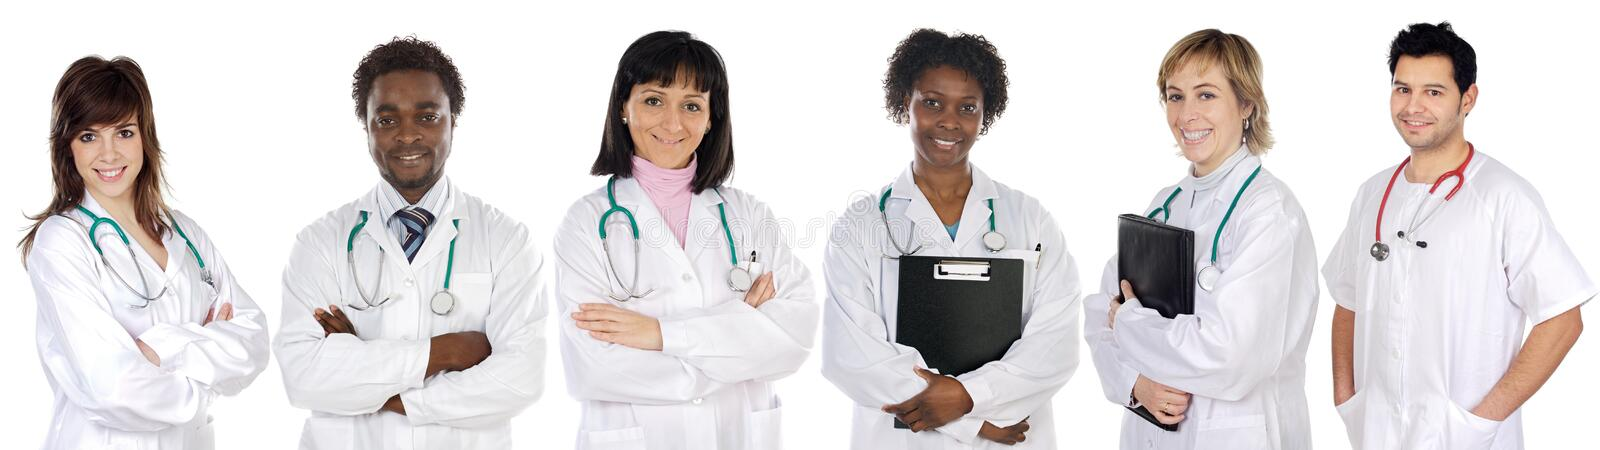 Download Multi-ethnic Medical Team Stock Photography - Image: 4886142